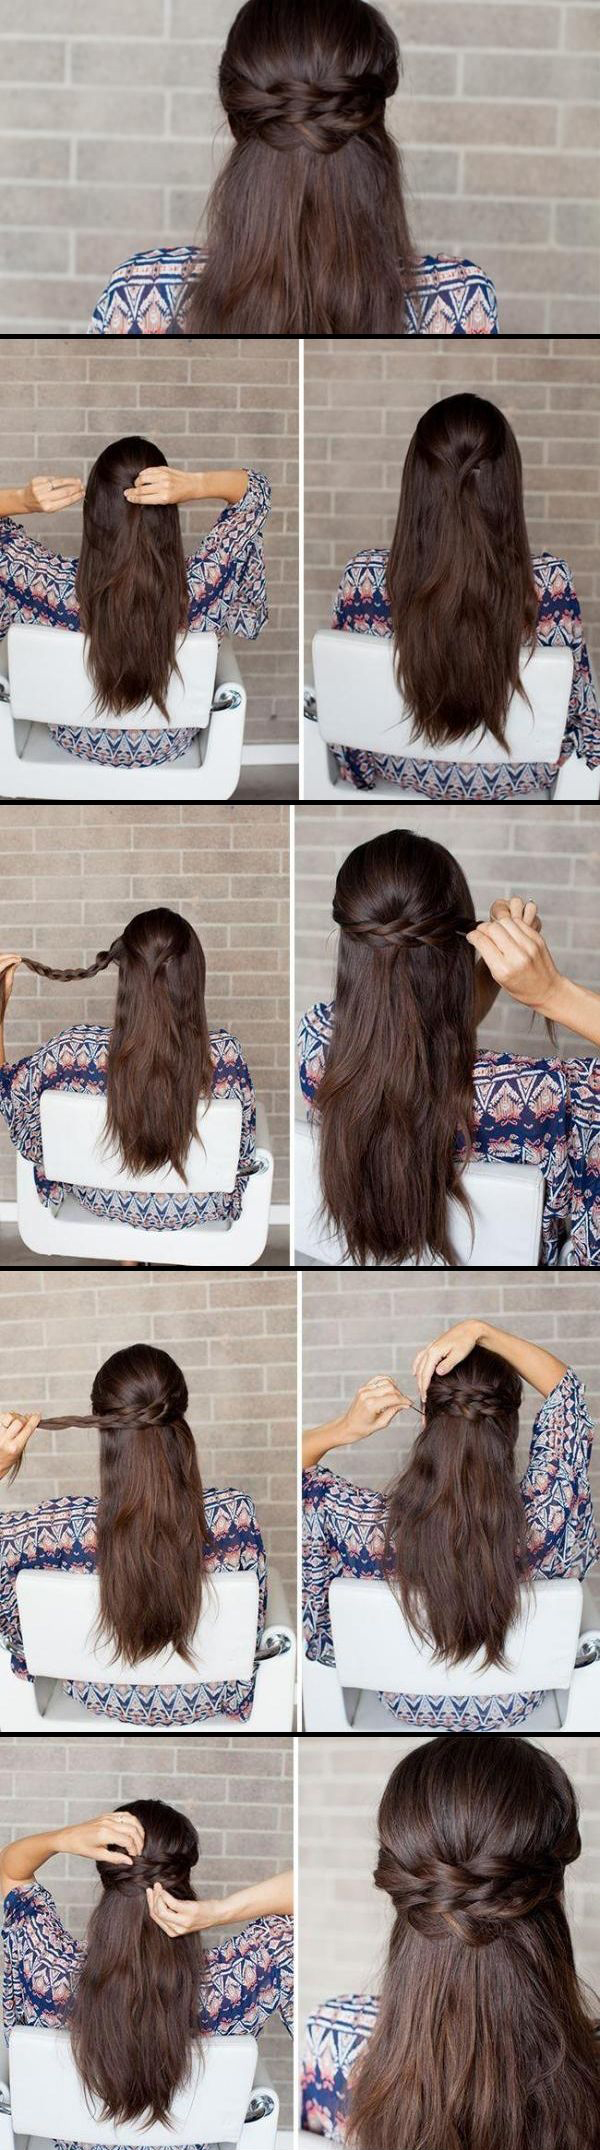 Such an easy but cute hair tutorial need to try this tonight